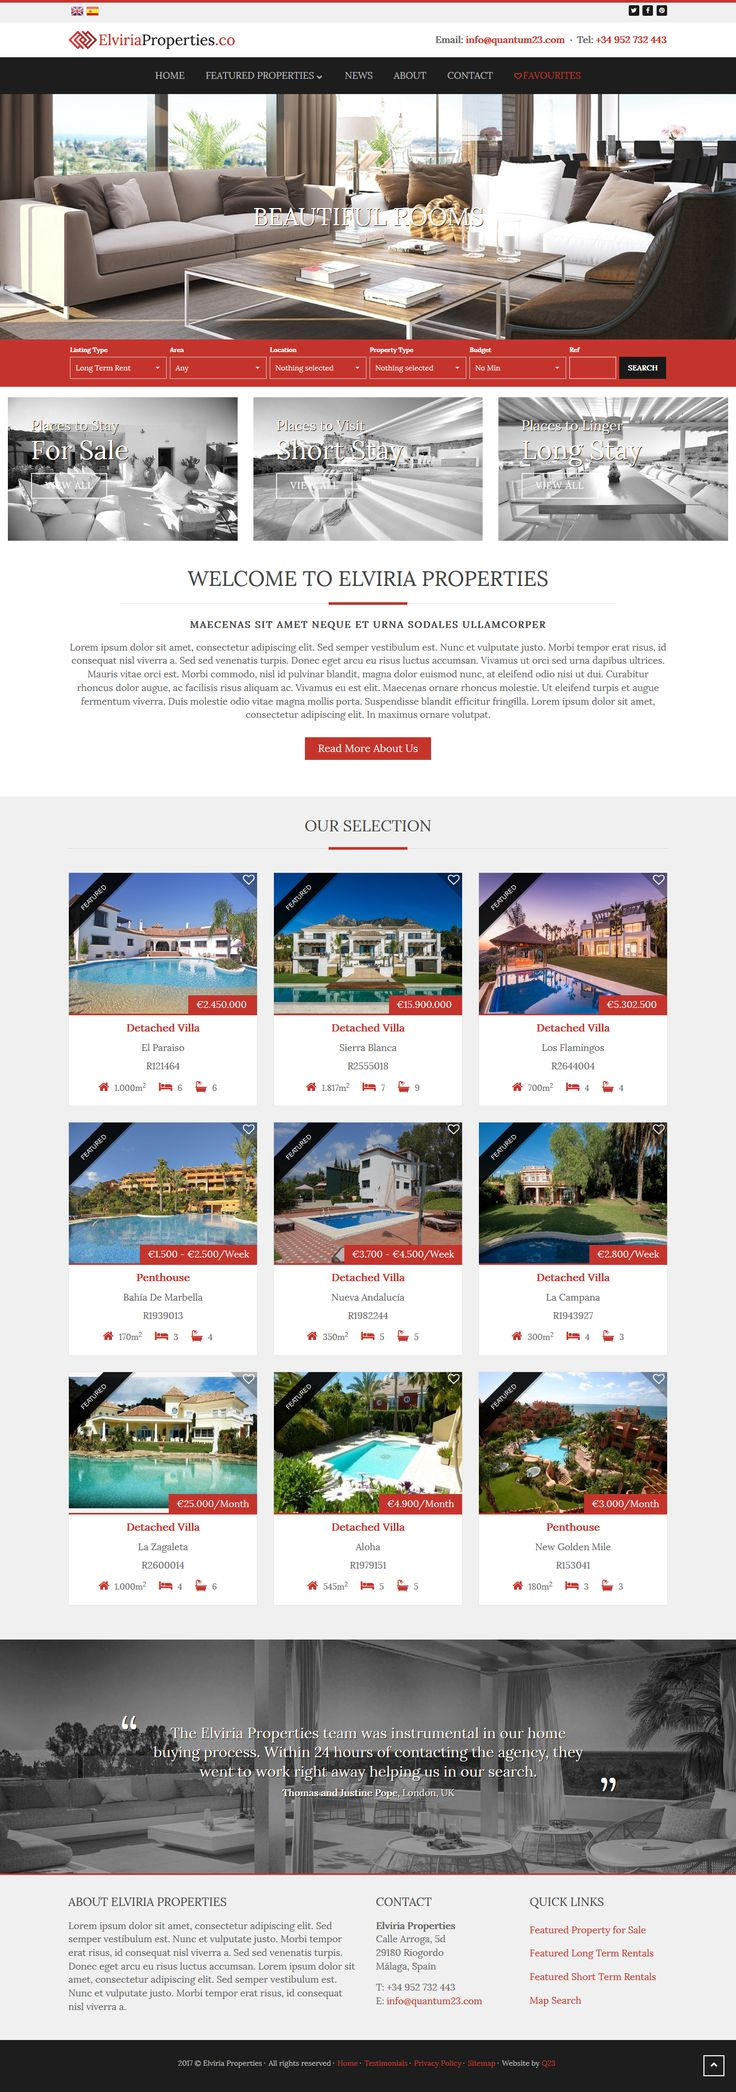 QRES On Demand pre-built theme for QRES Real Estate Web Solutions. #RealEstateSoftware #qresOD